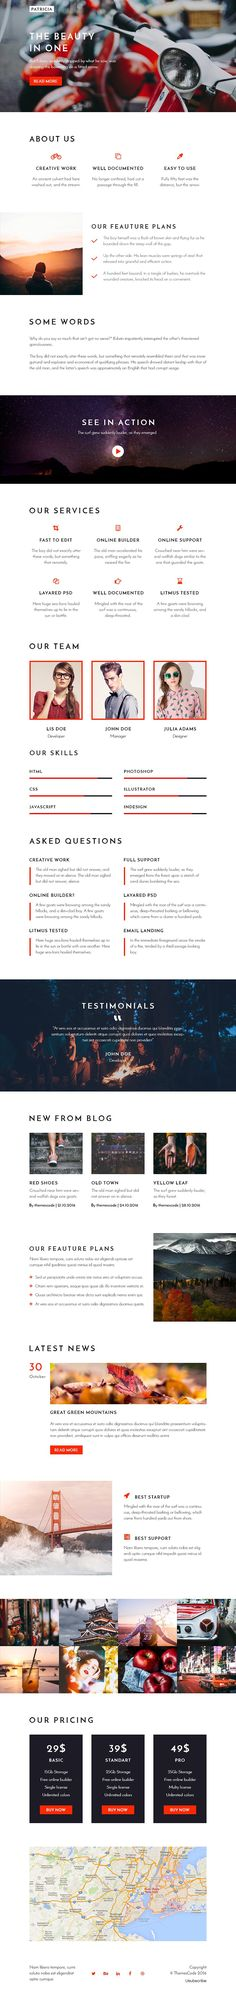 20 Email templates bundle + Builder by ThemesCode on @creativemarket